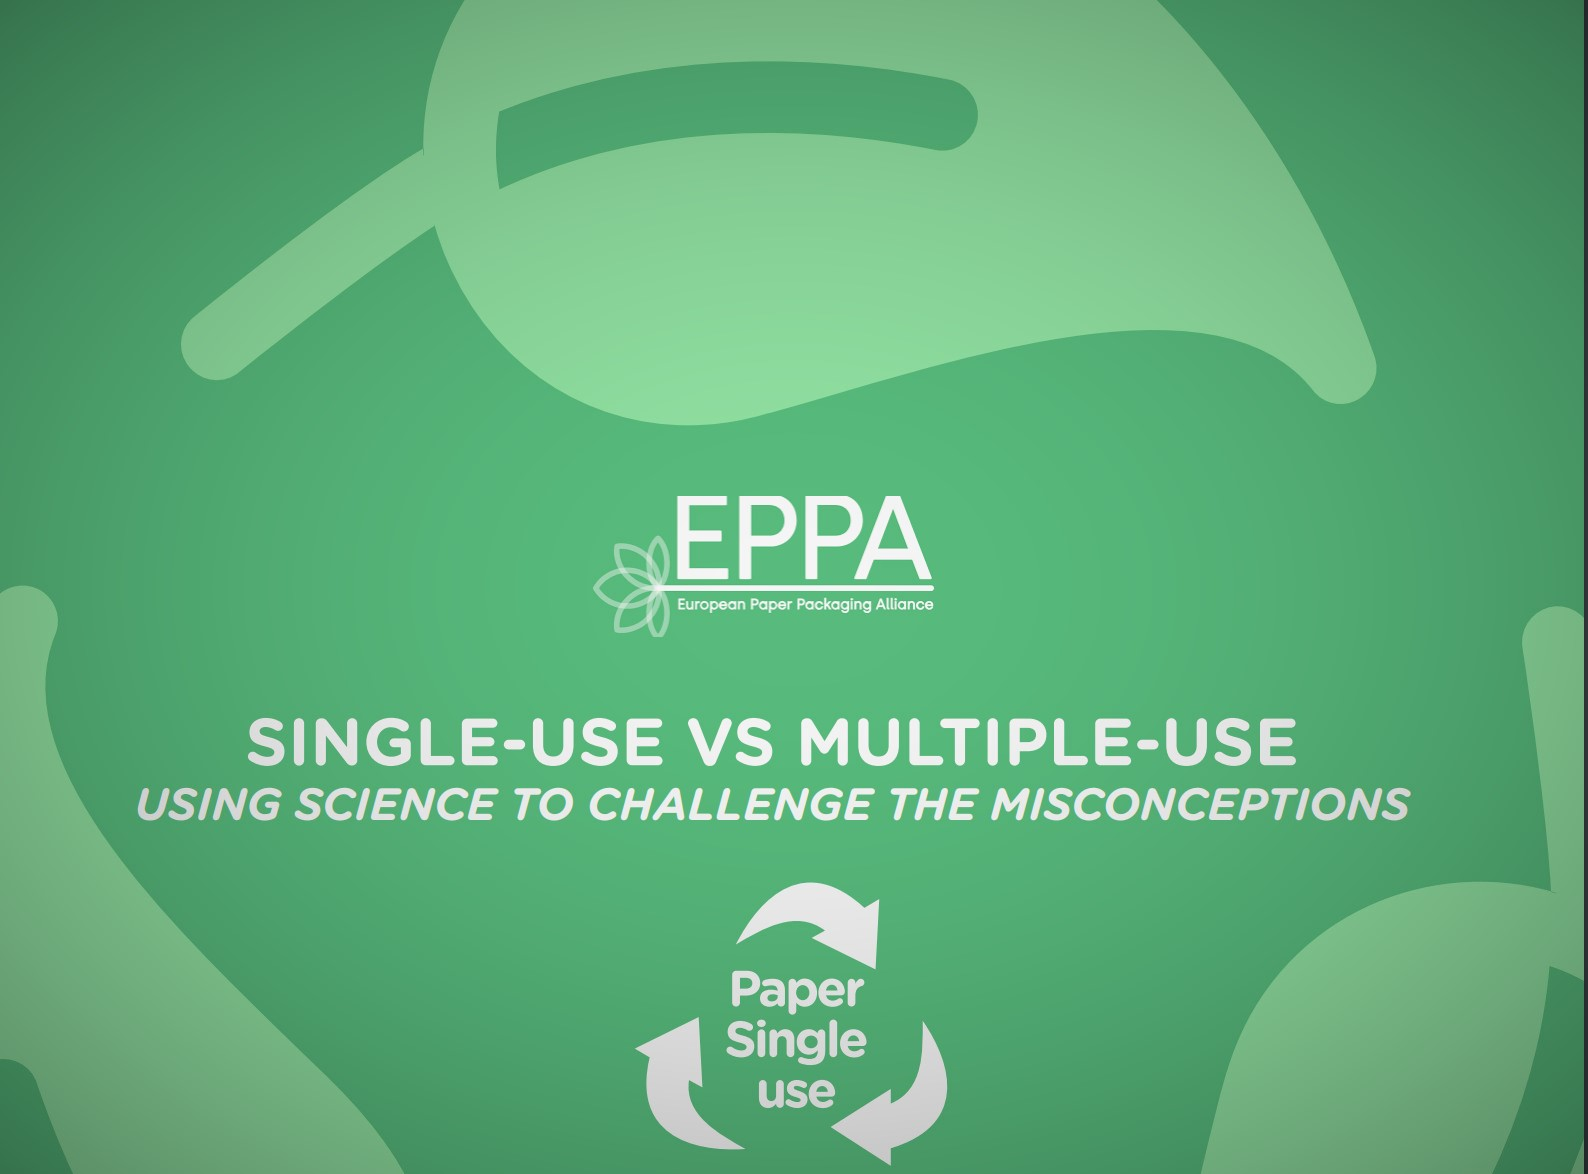 EPPA single use